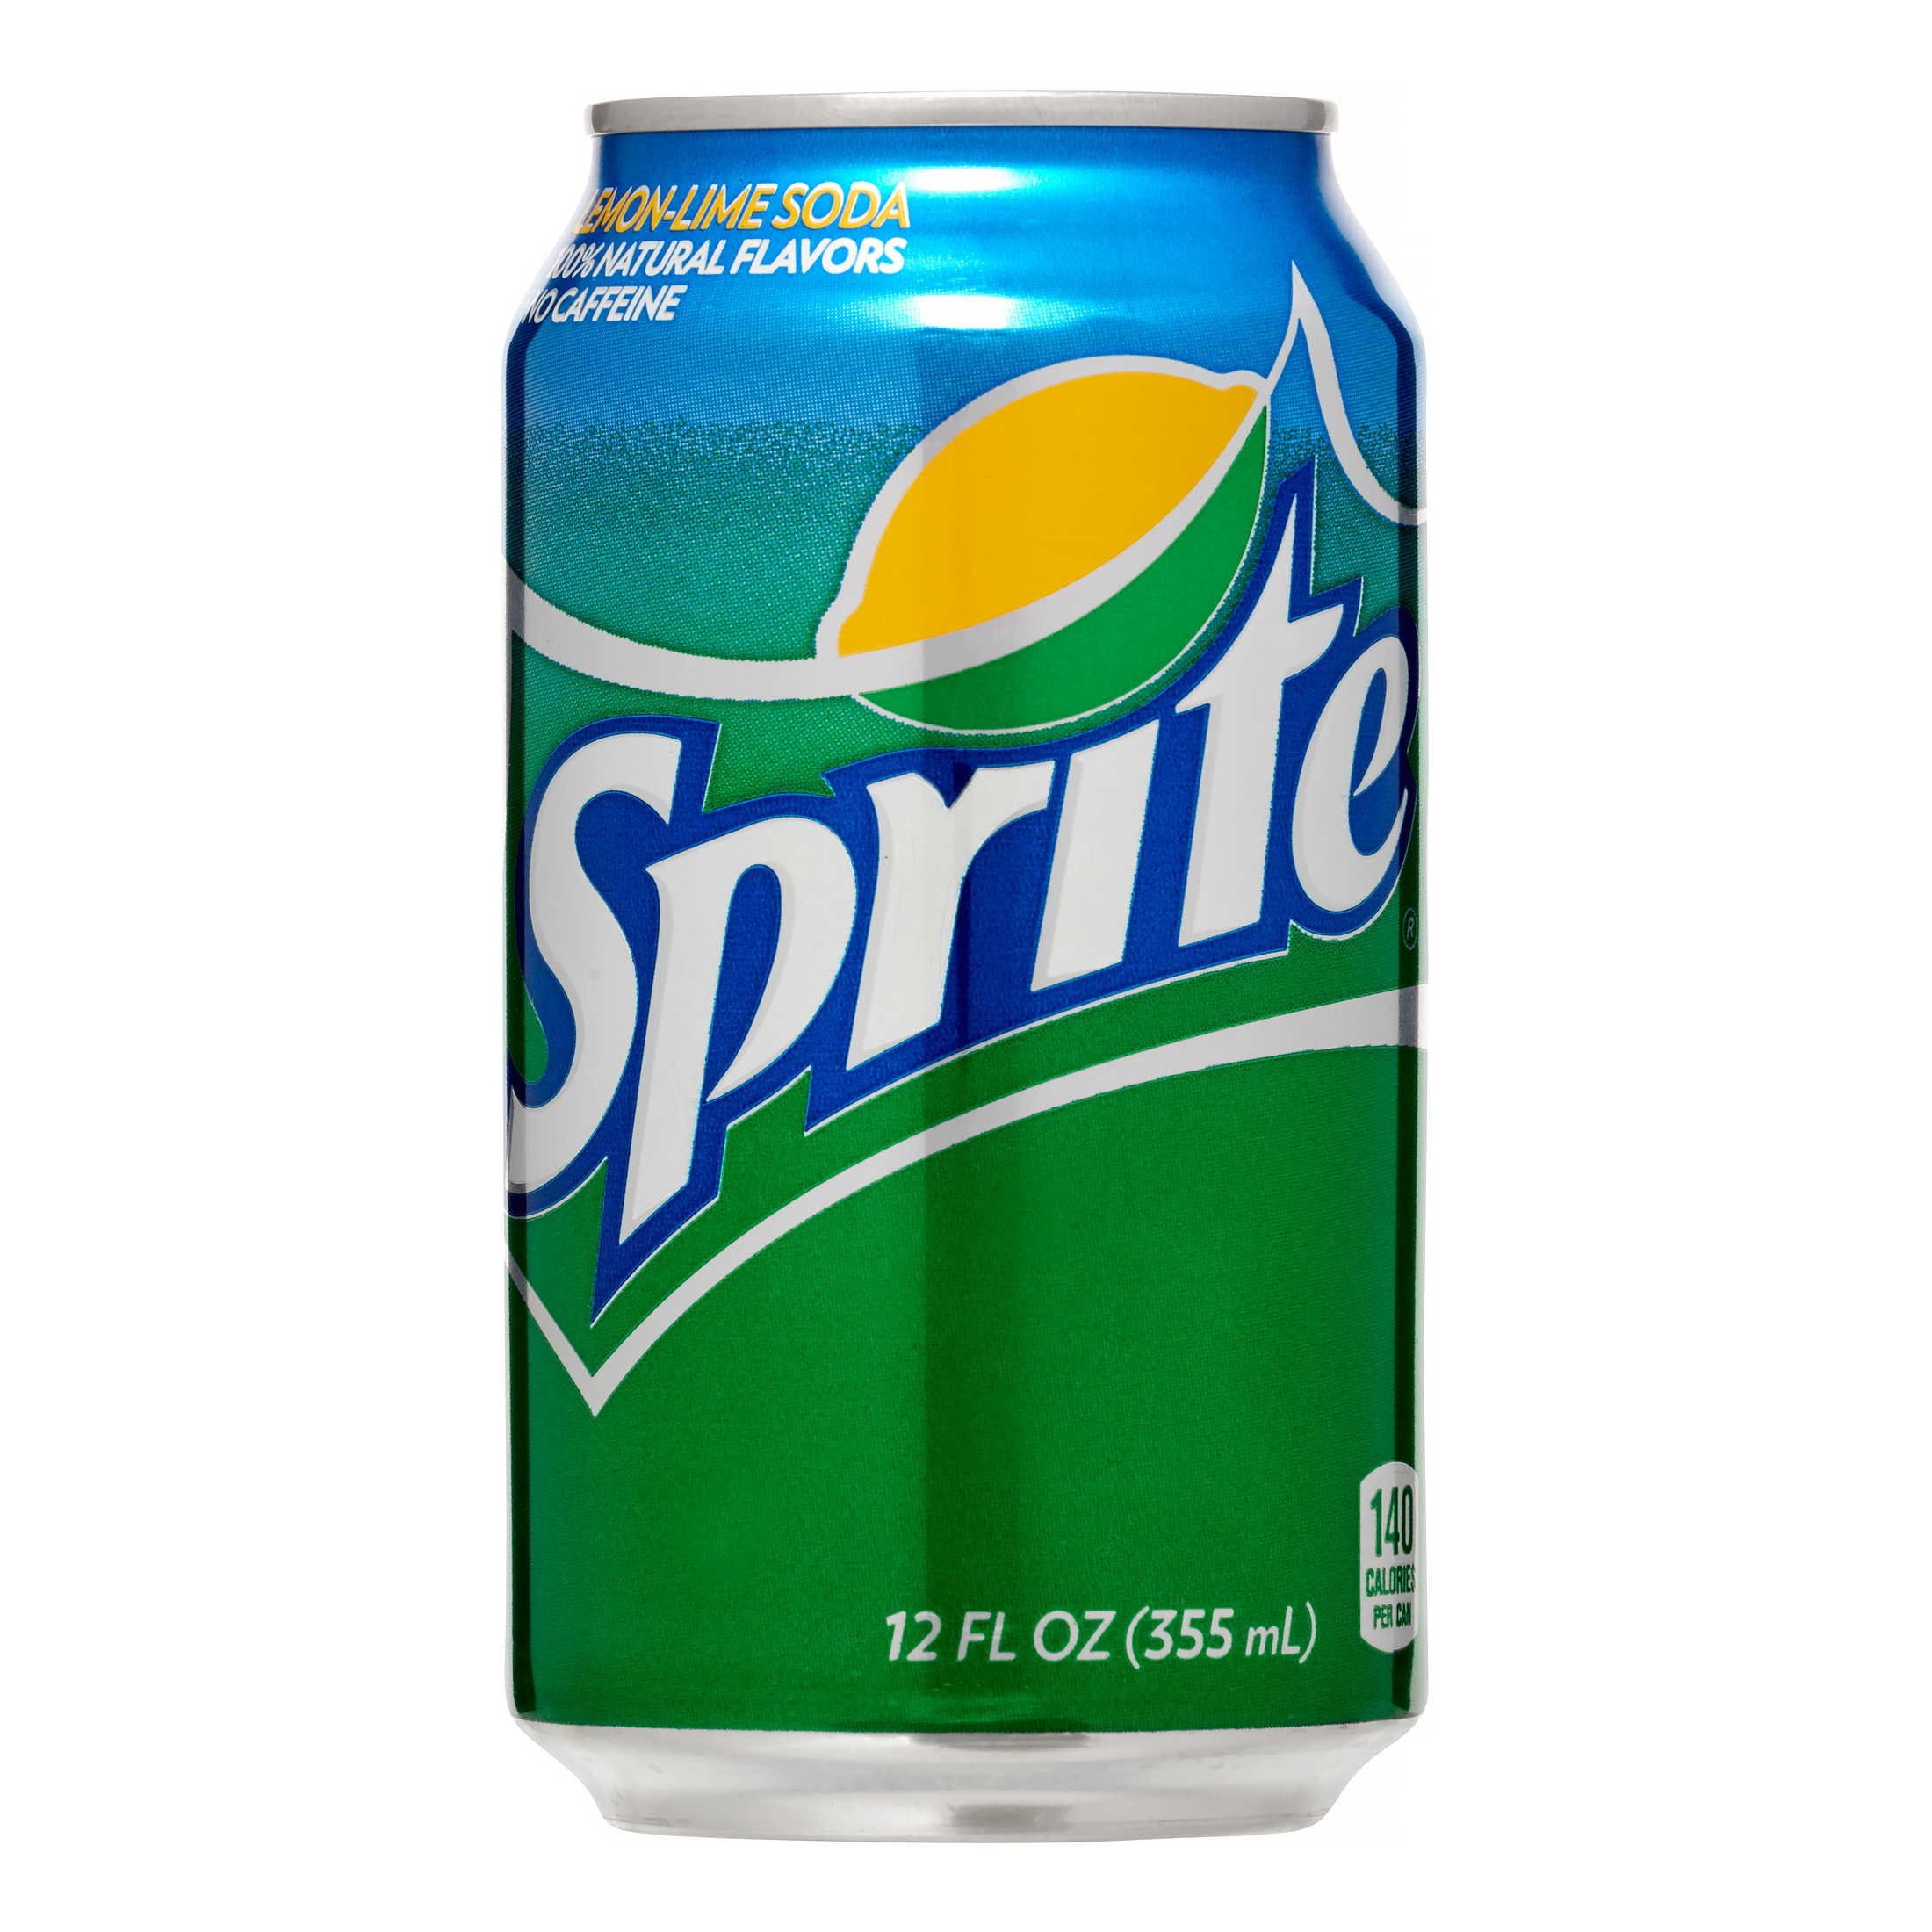 Sprite Lemon-Lime Soda, 12 Fl Oz, 12 Count